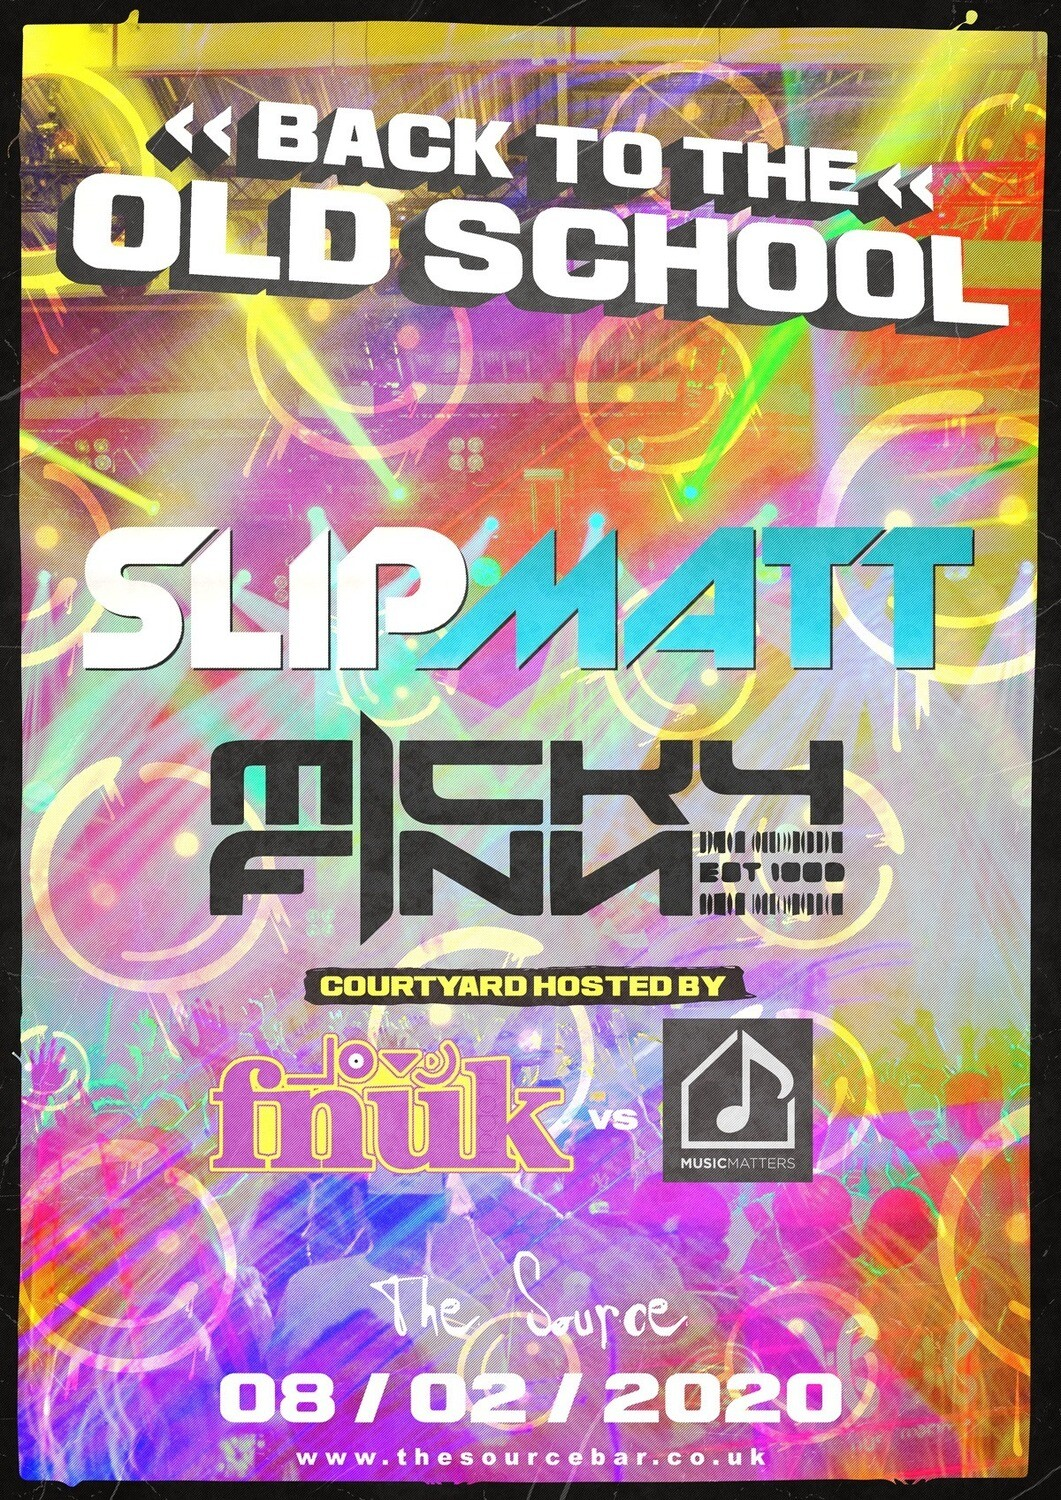 Saturday 8th February - Back to the Old School with Slipmatt & Micky Finn